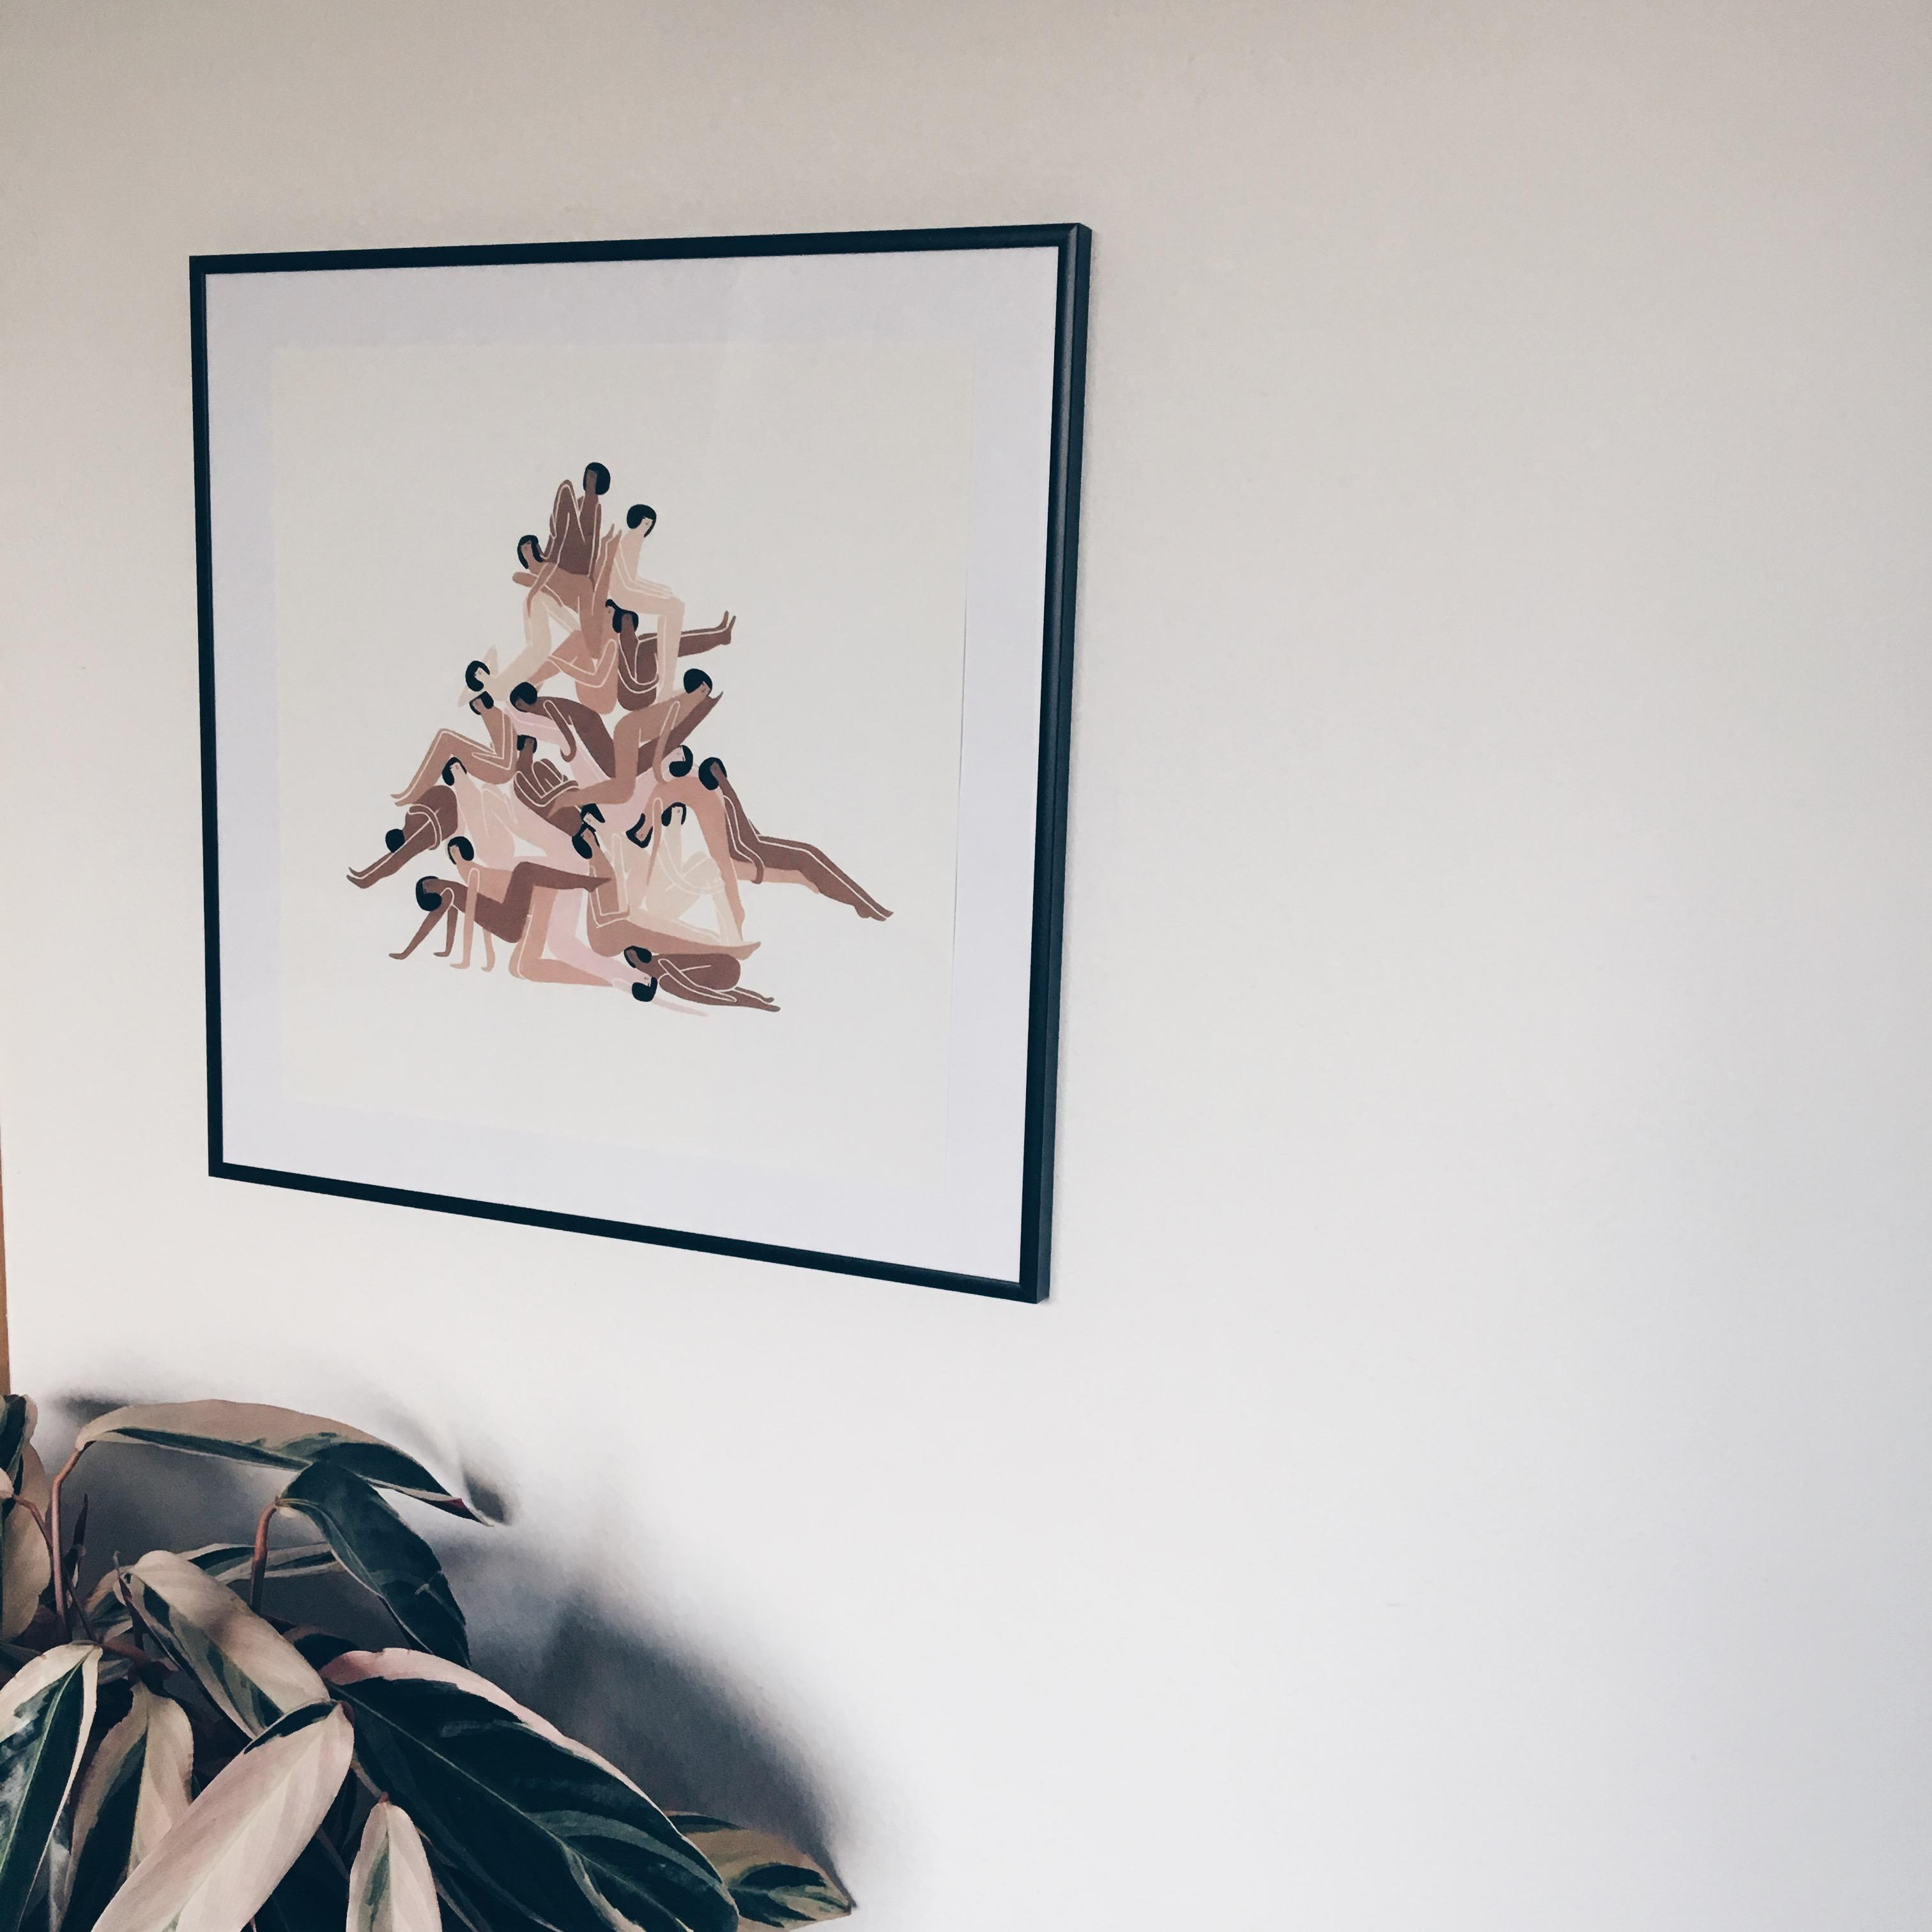 Togetherness #lauraberger #print #interior #inspiration #calathea #bedroom